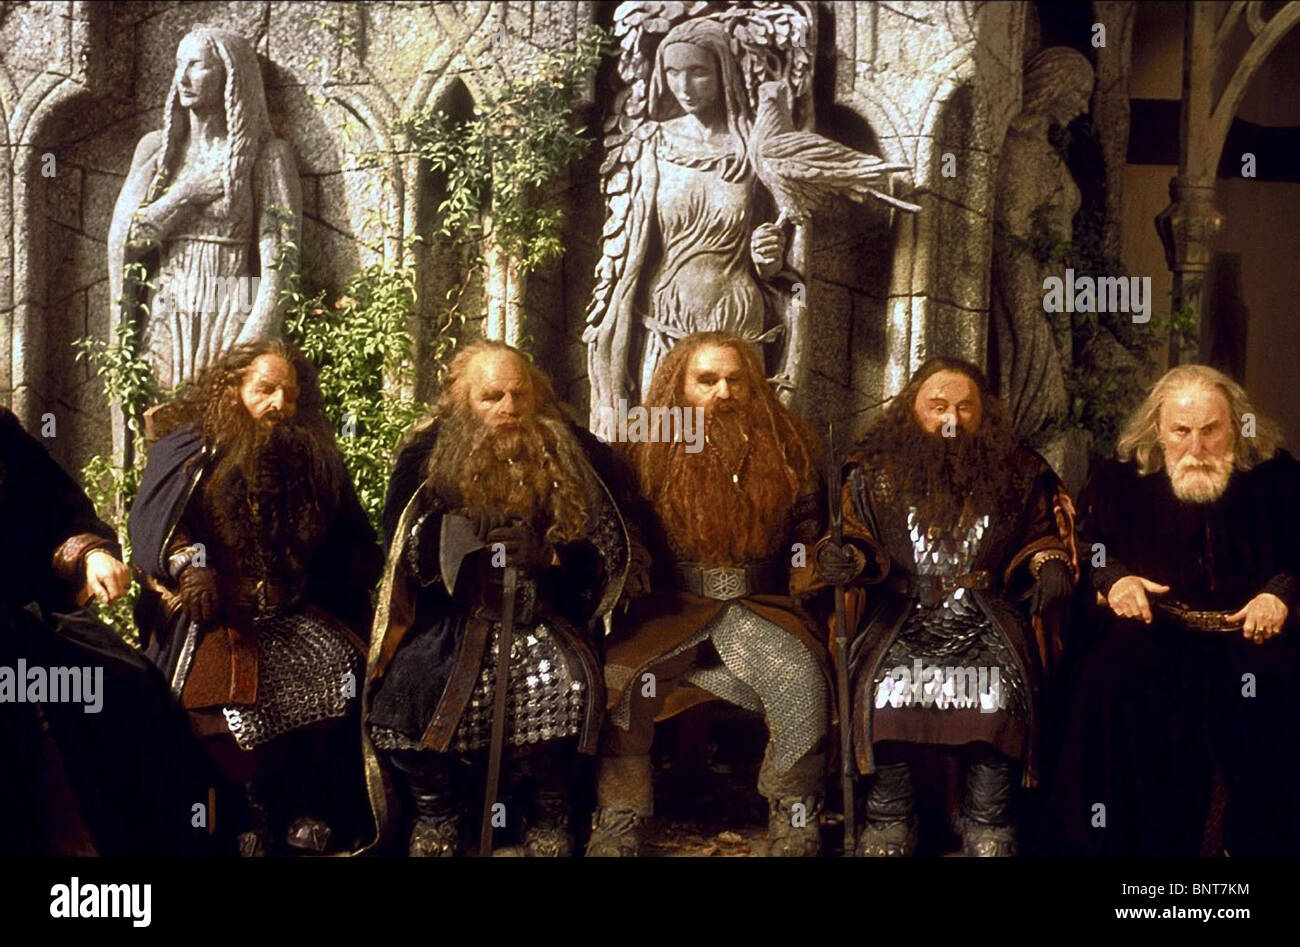 Lord Of The Rings Council